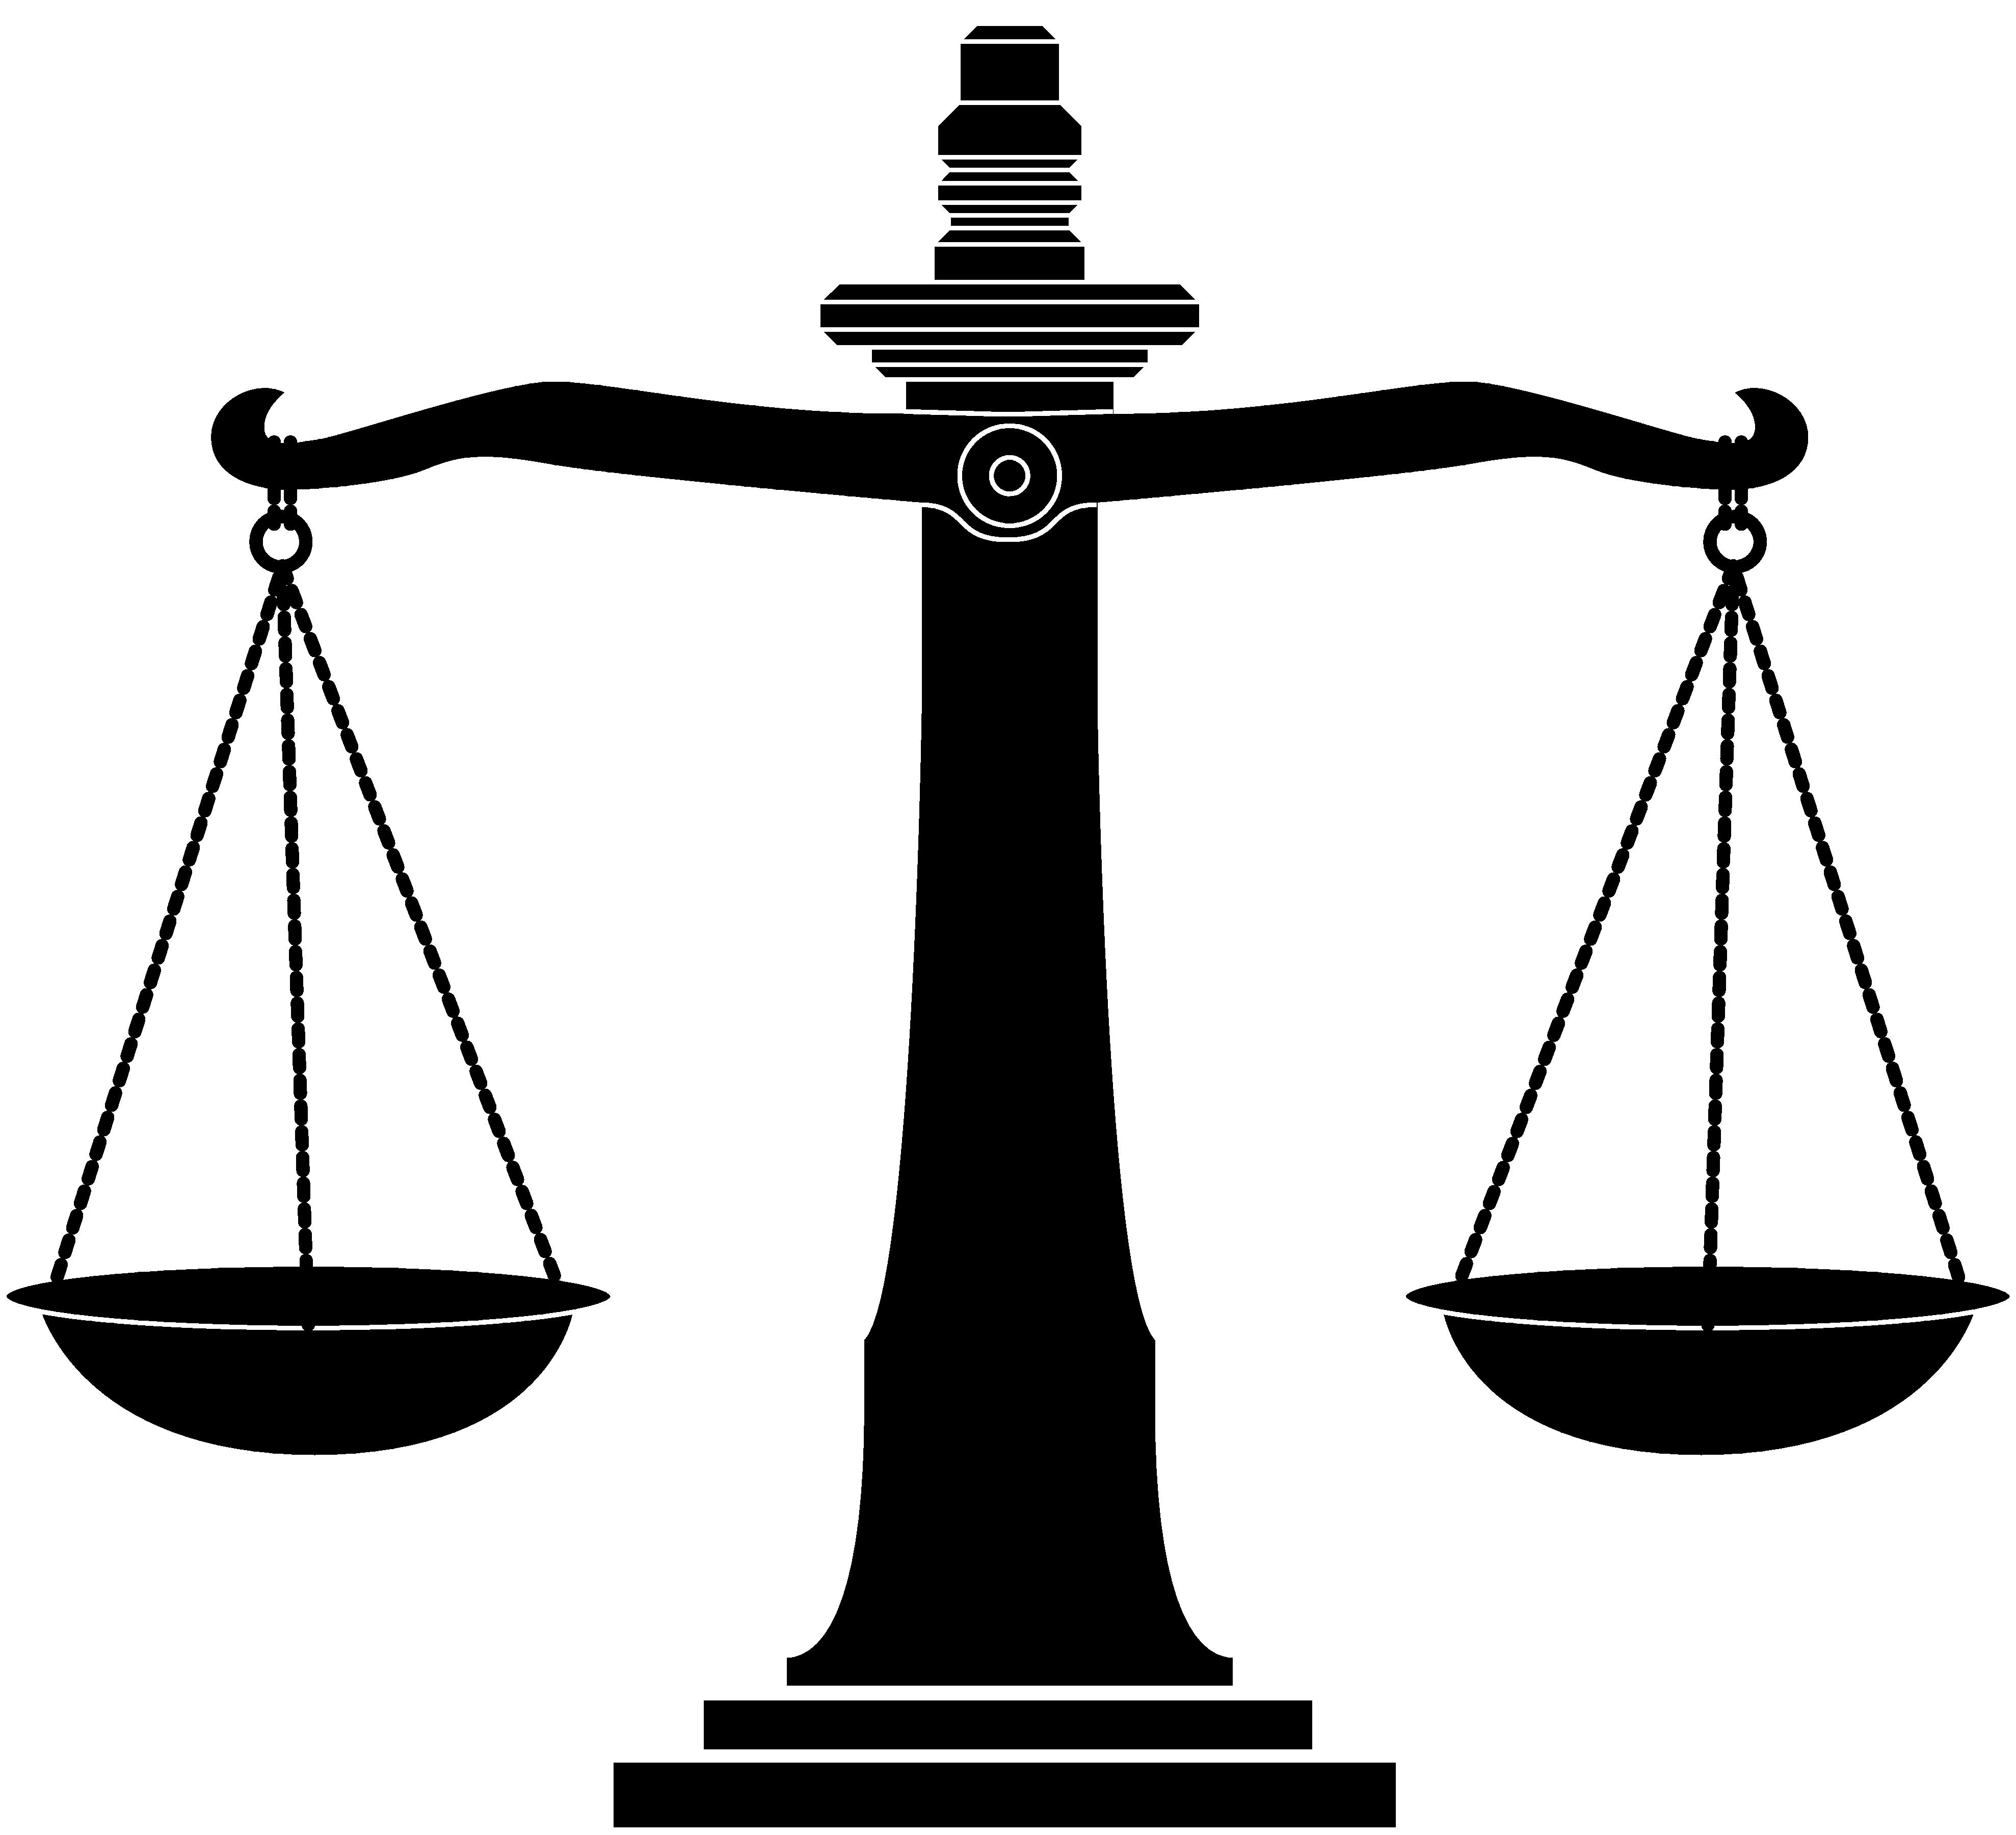 Scales clipart judgement. And grace revandy org